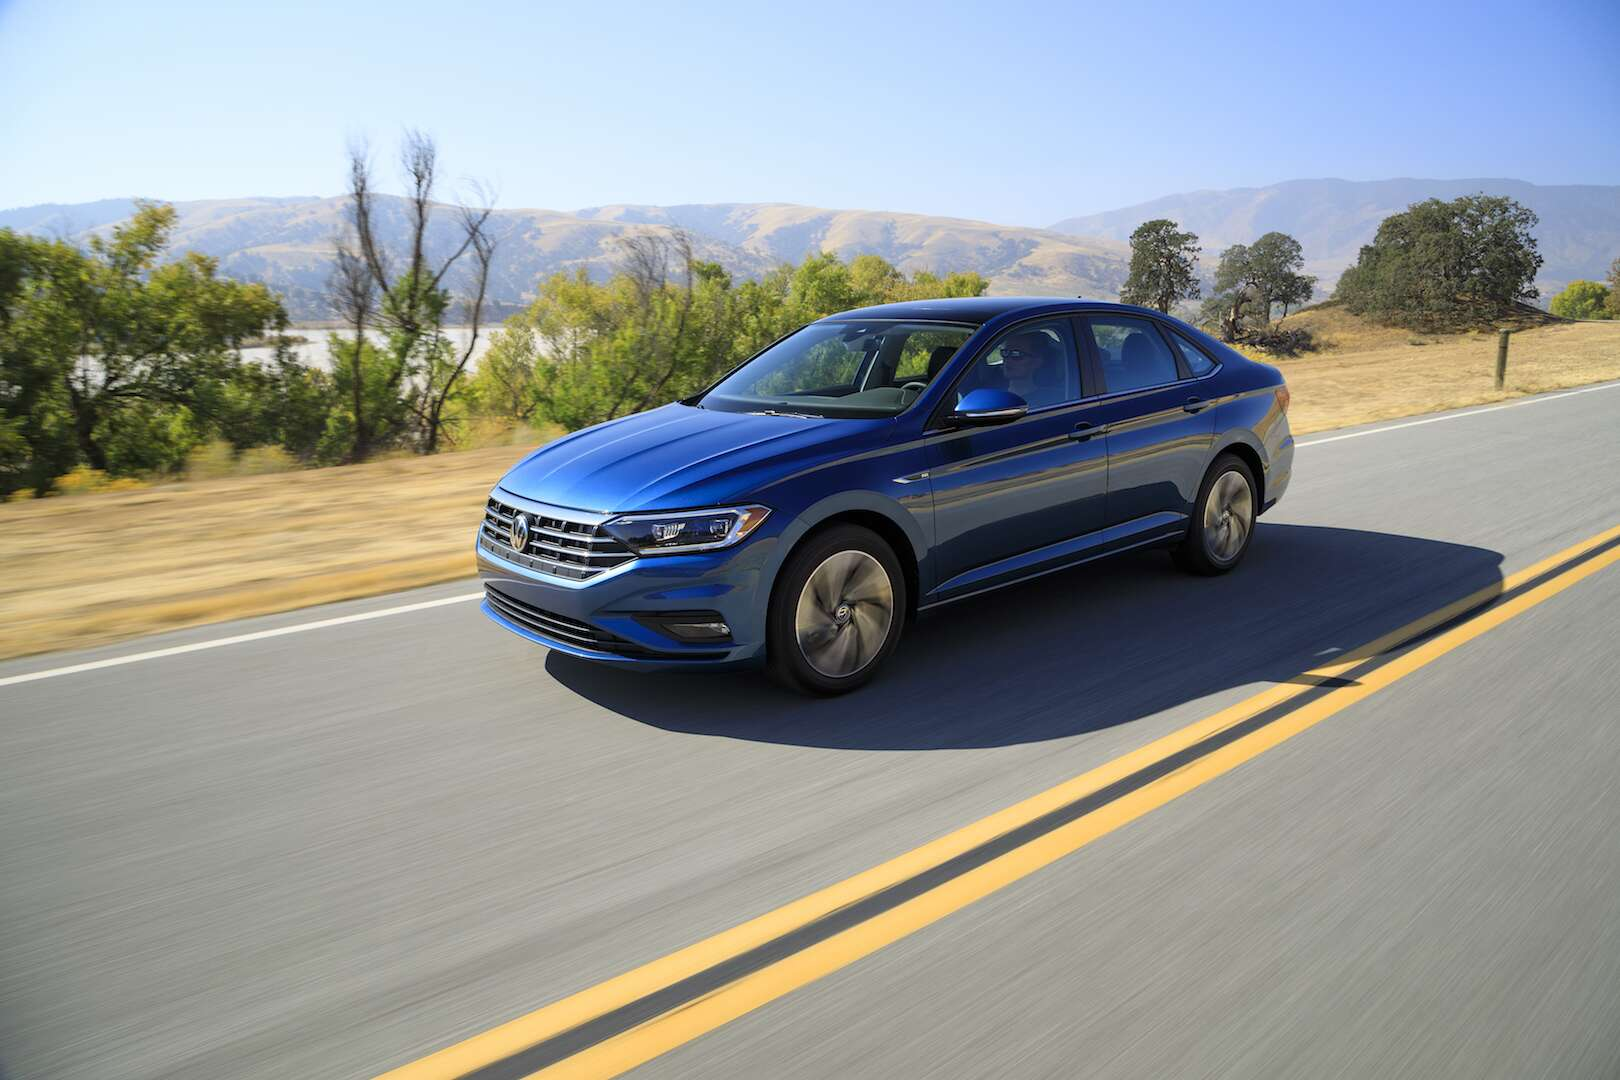 2019 Vw Jetta Gives A Stylish New Shape To Volkswagens Comeback At Timing Belt Broke Volkswagen